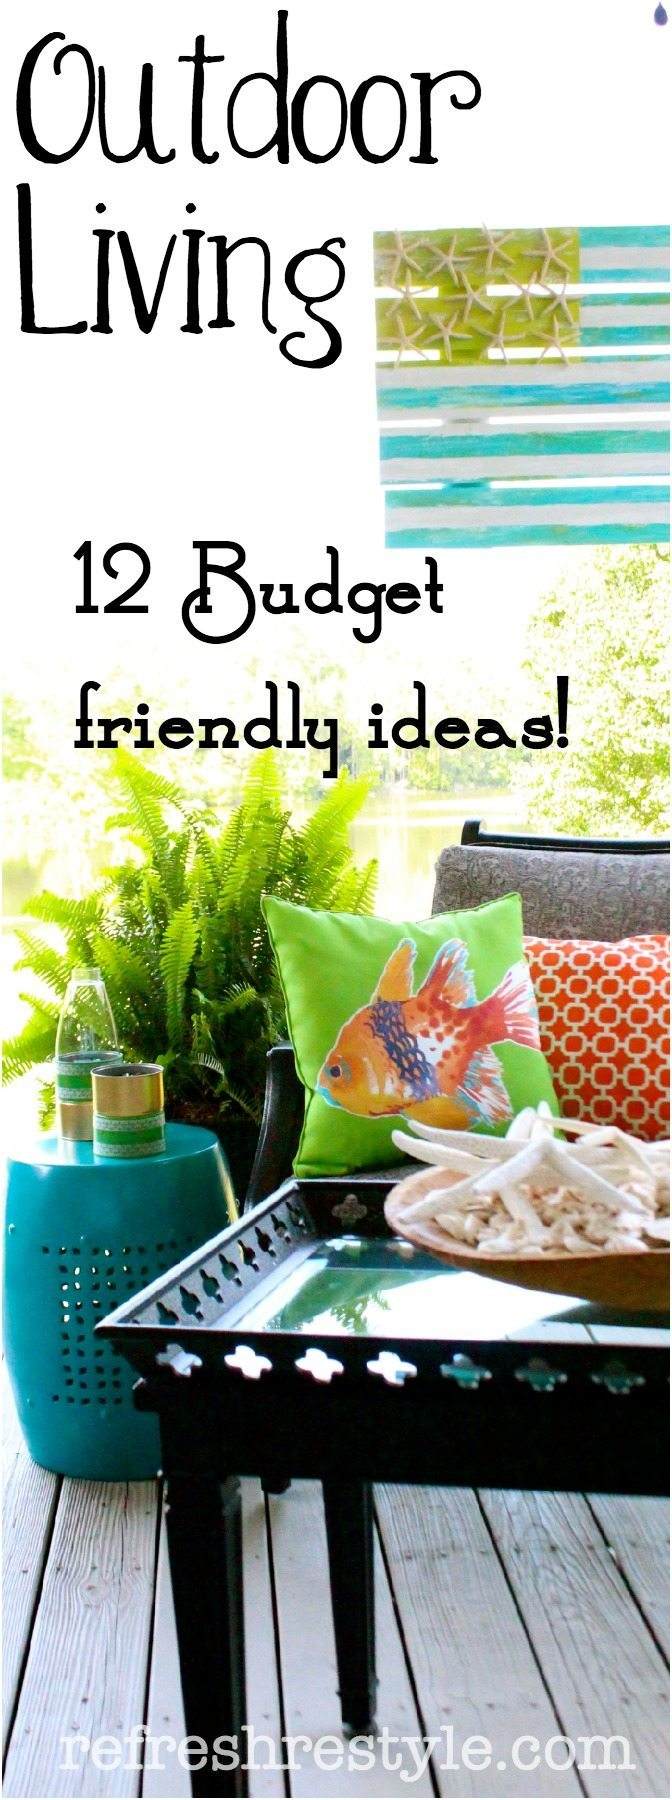 Outdoor living ideas outdoorbeing for Outdoor living ideas on a budget